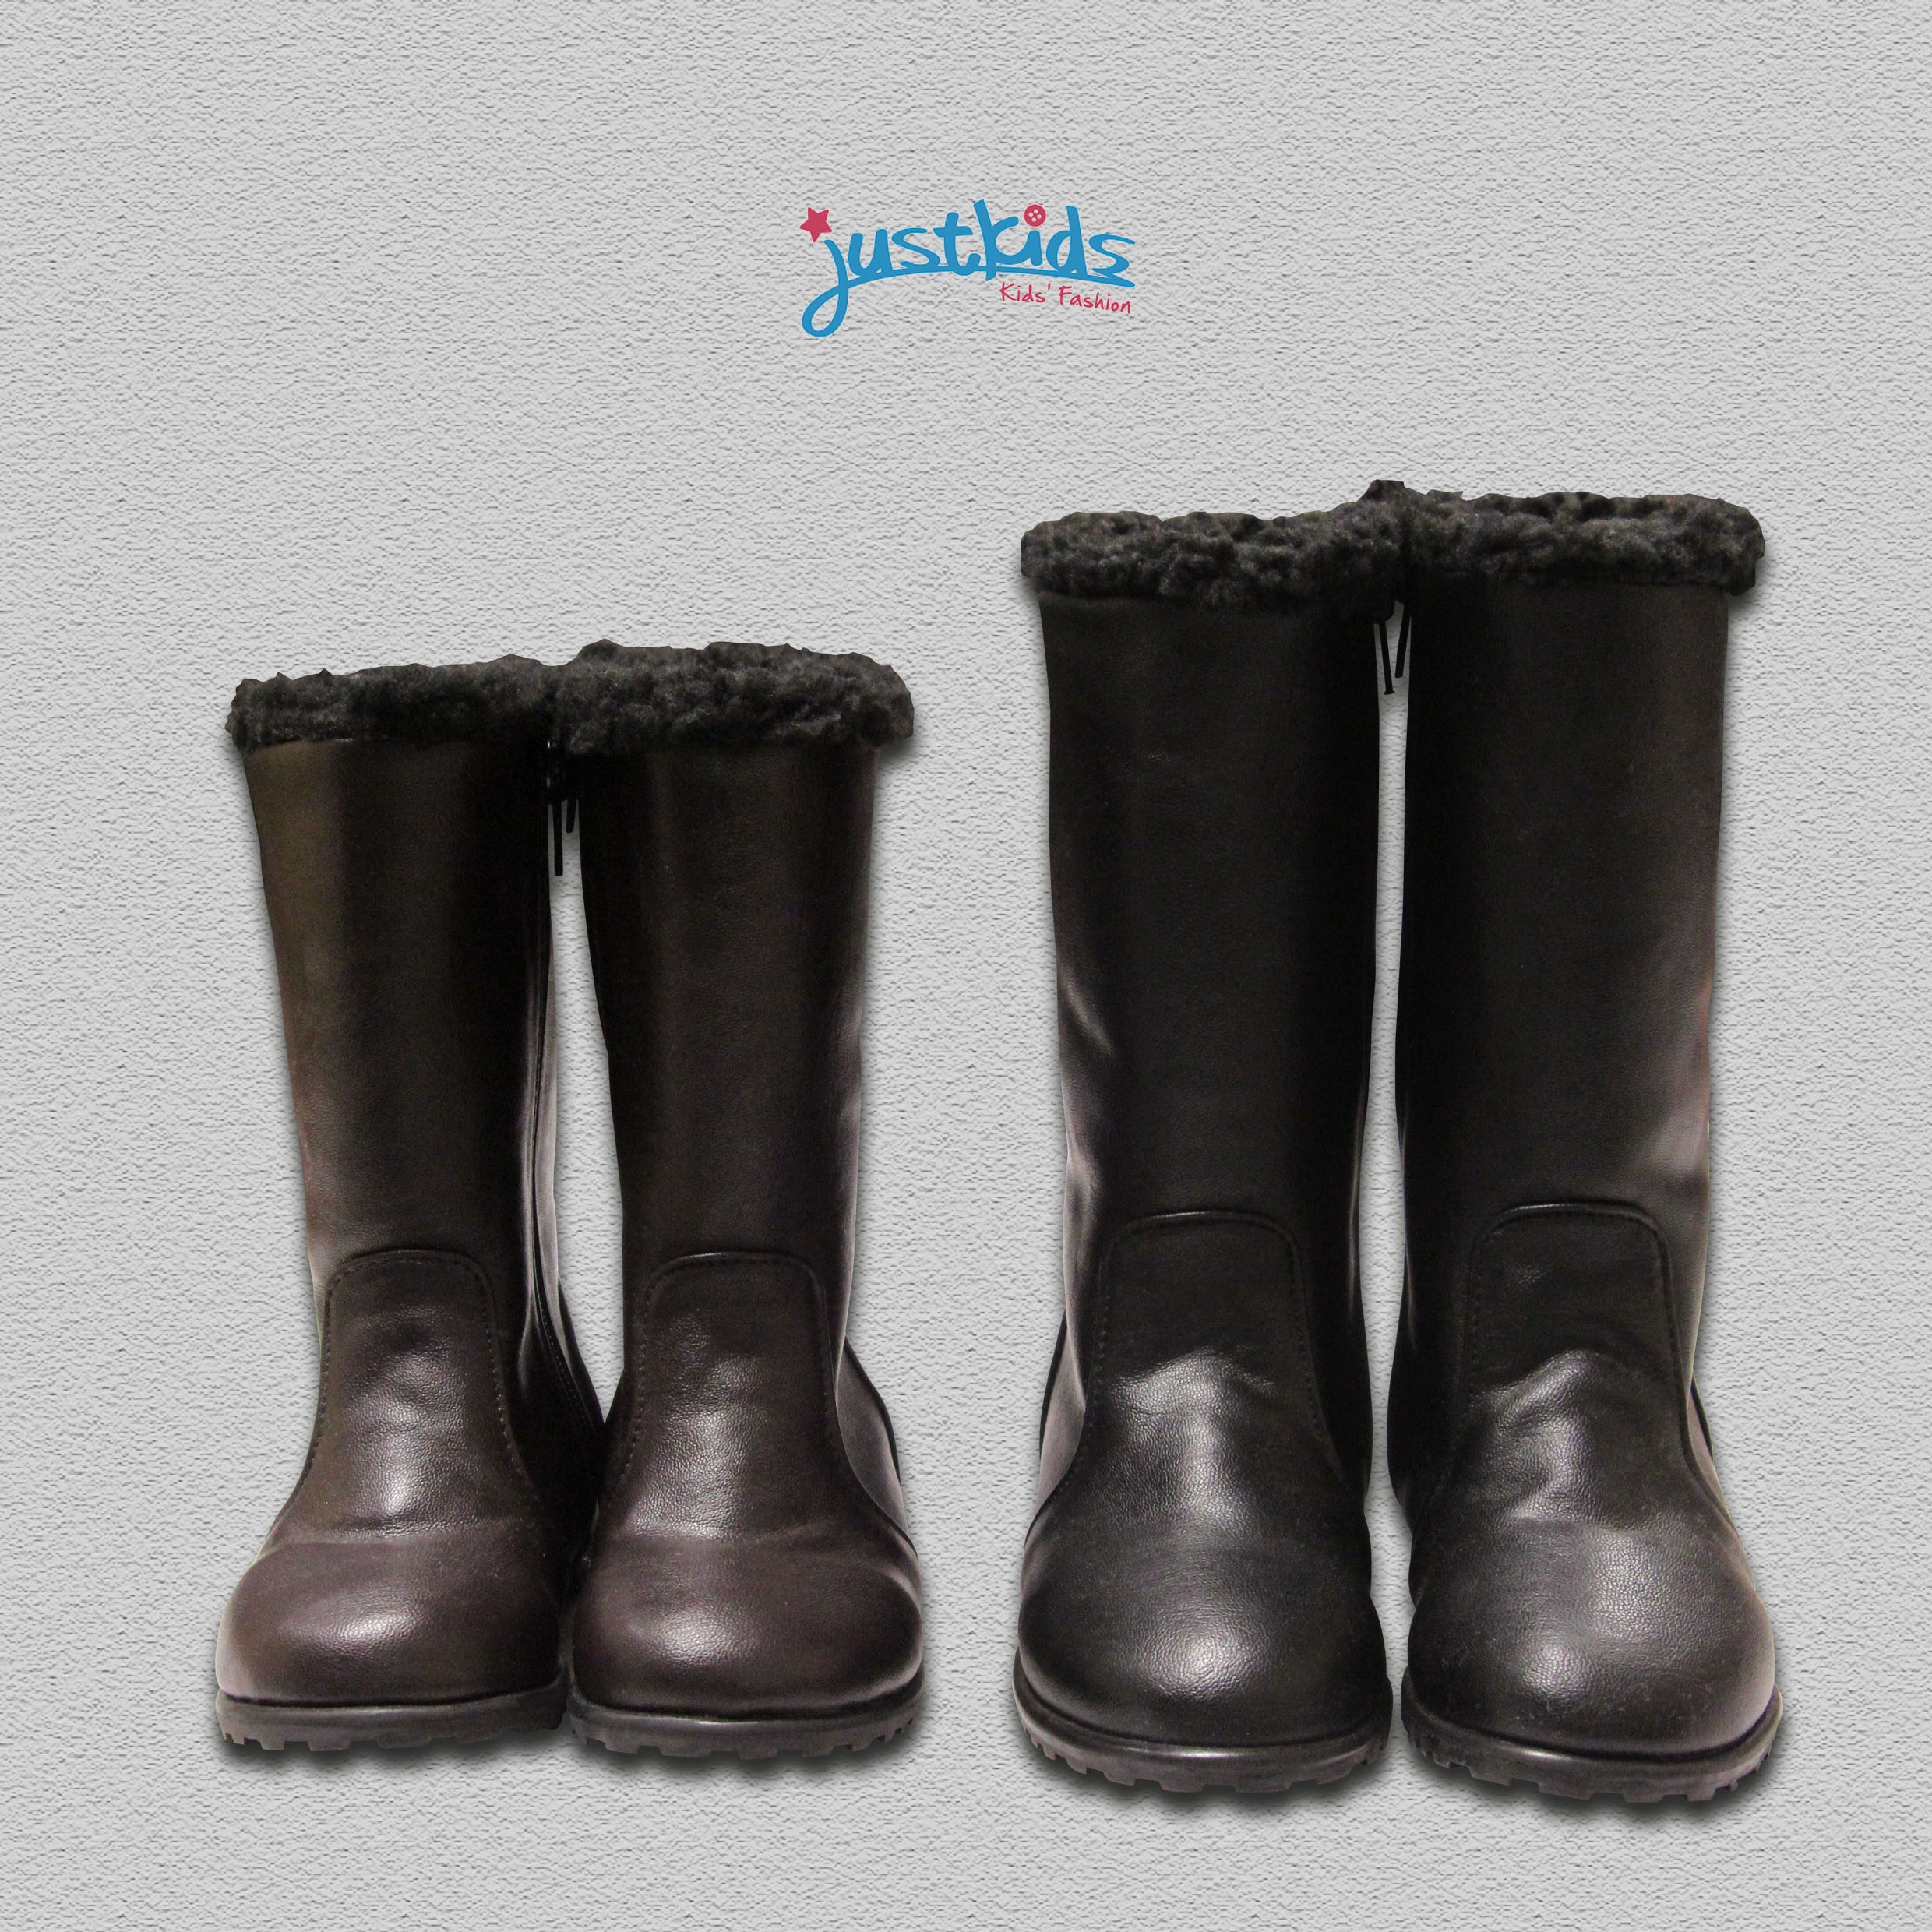 shoes481bk_gy